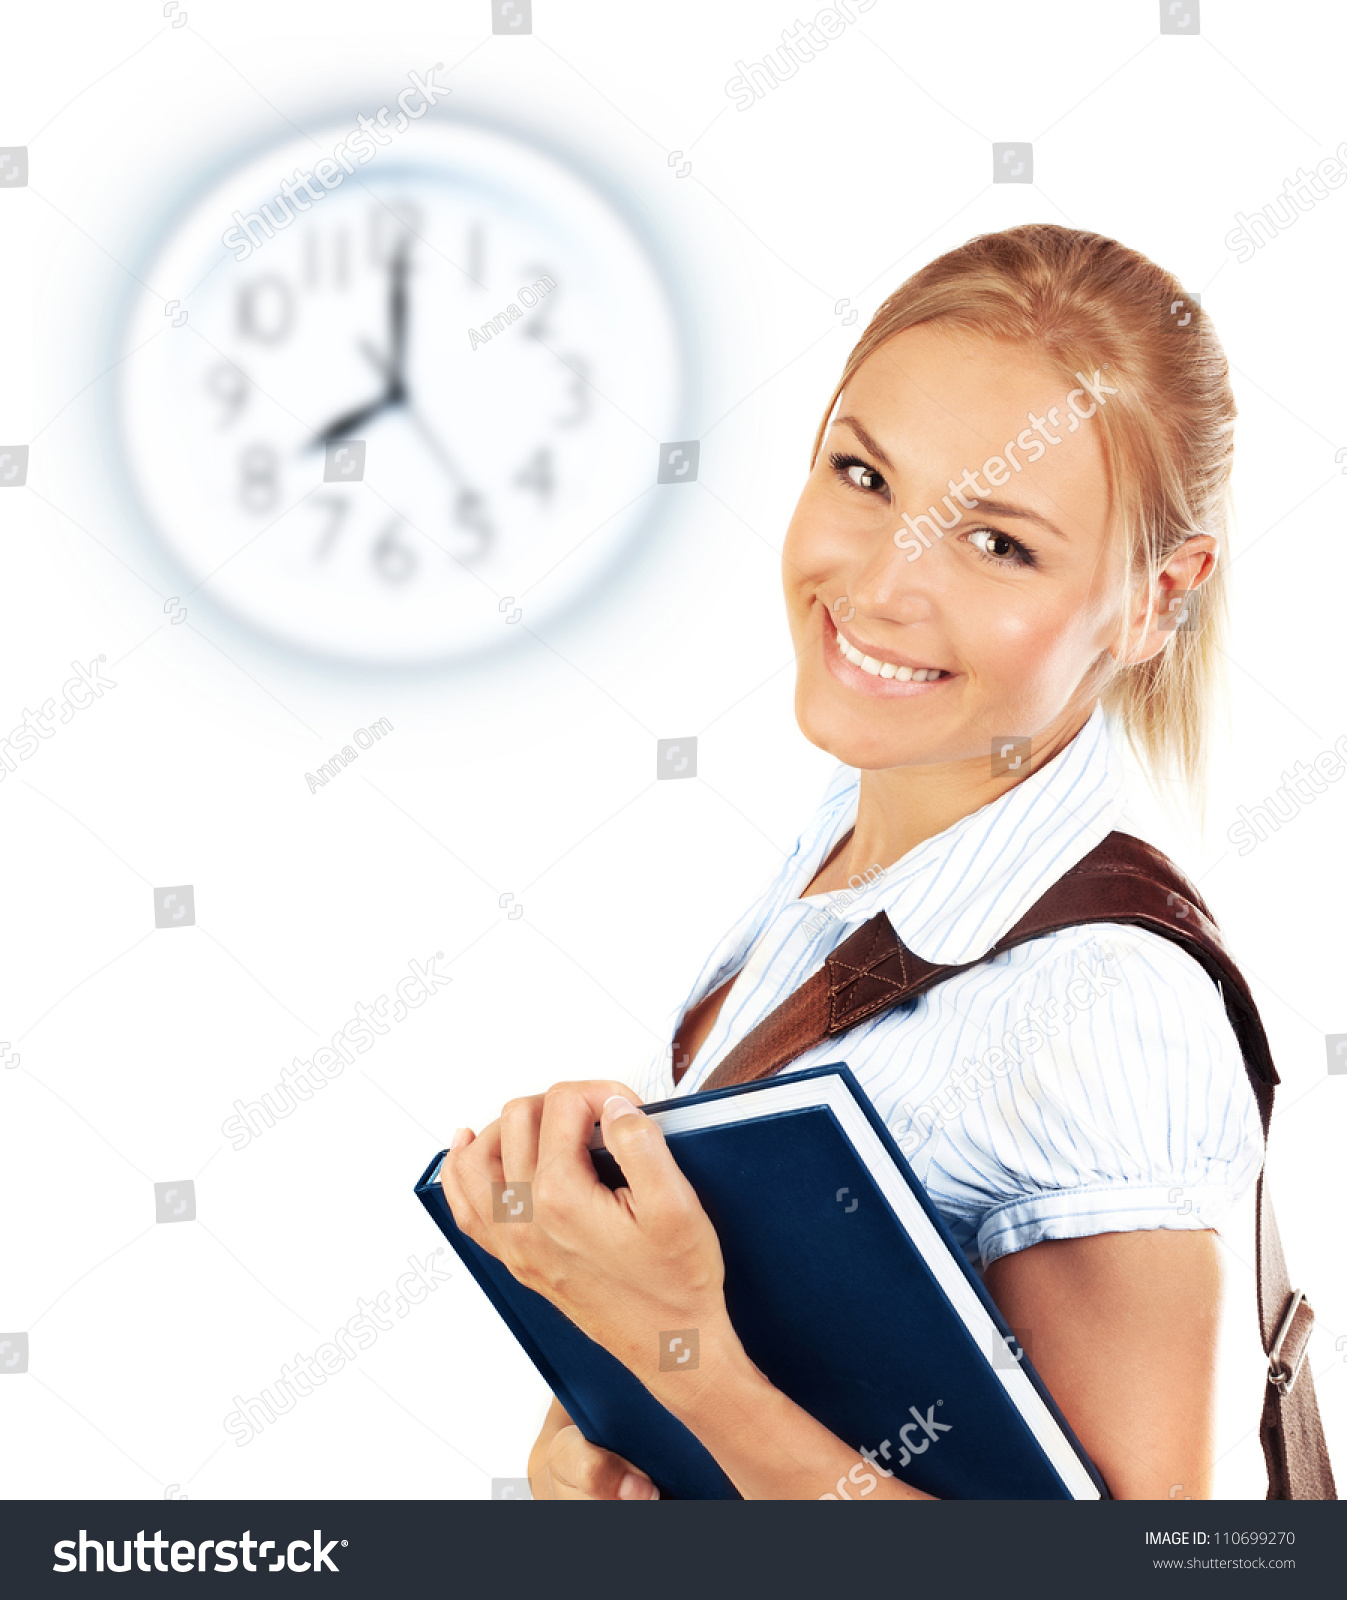 Clever School Girl: Portrait Of Beautiful Happy Student Female, Attractive